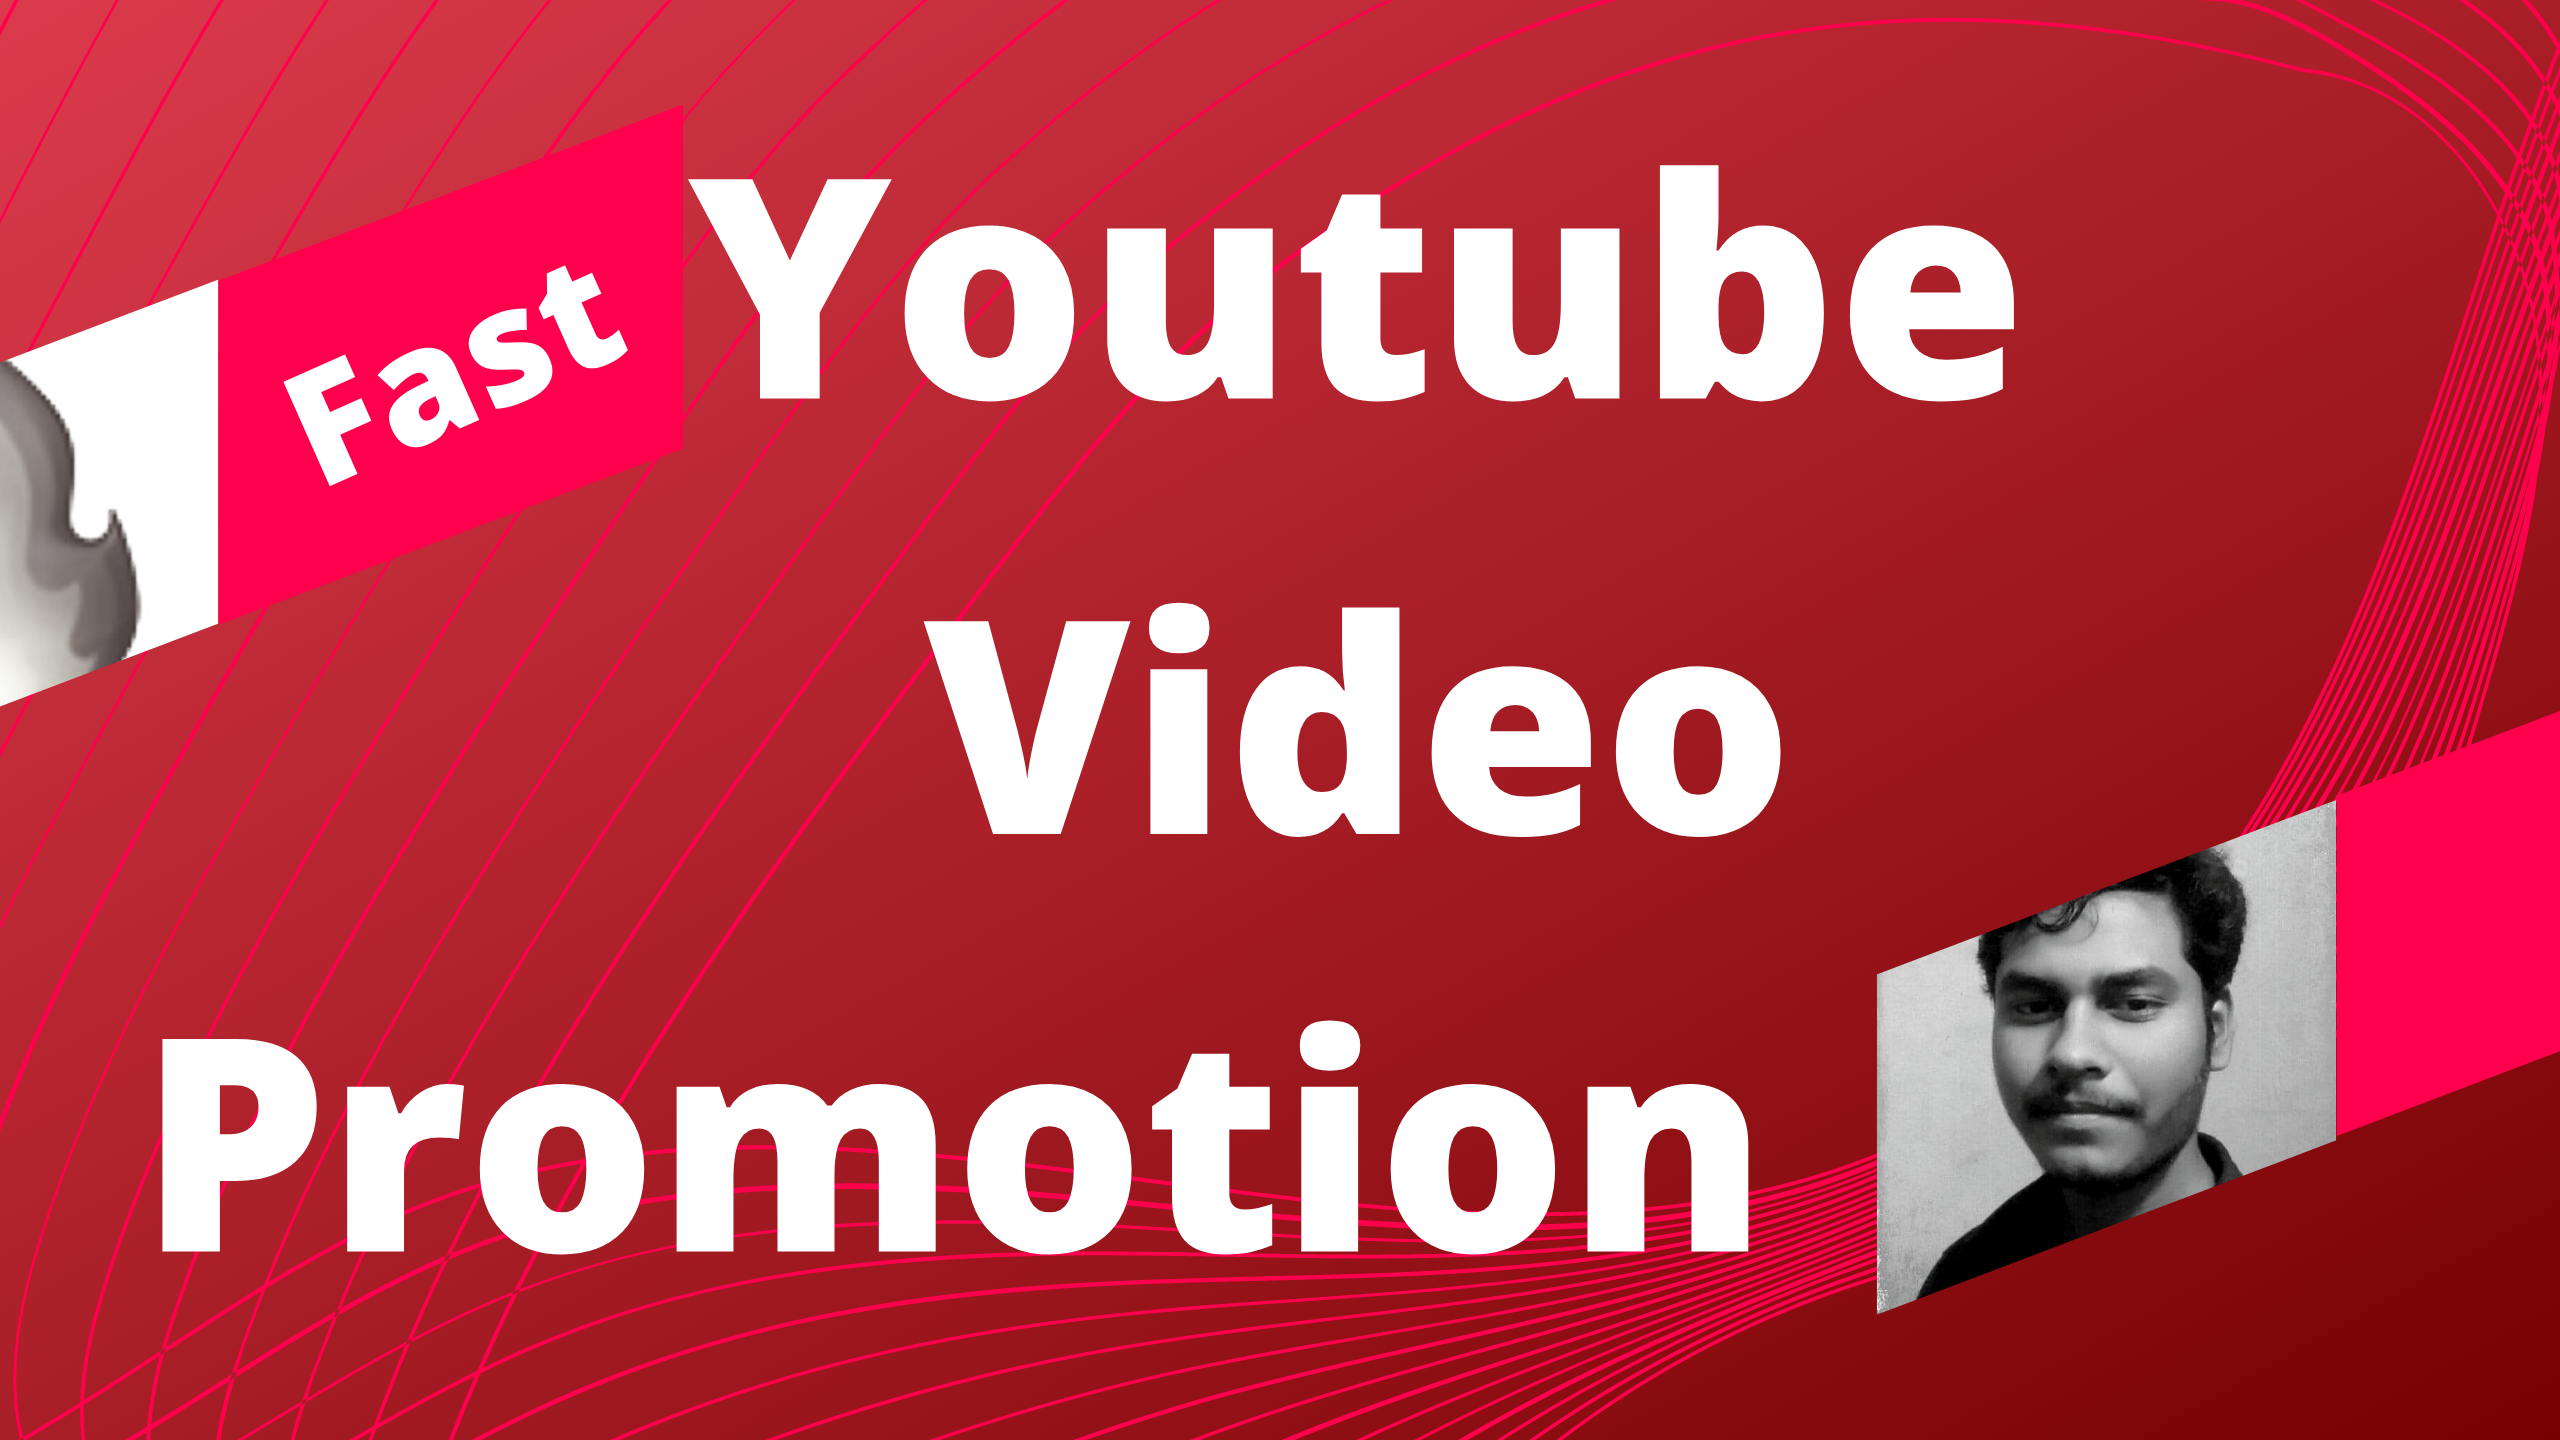 Youtube video promotion social media marketing by Sumon11